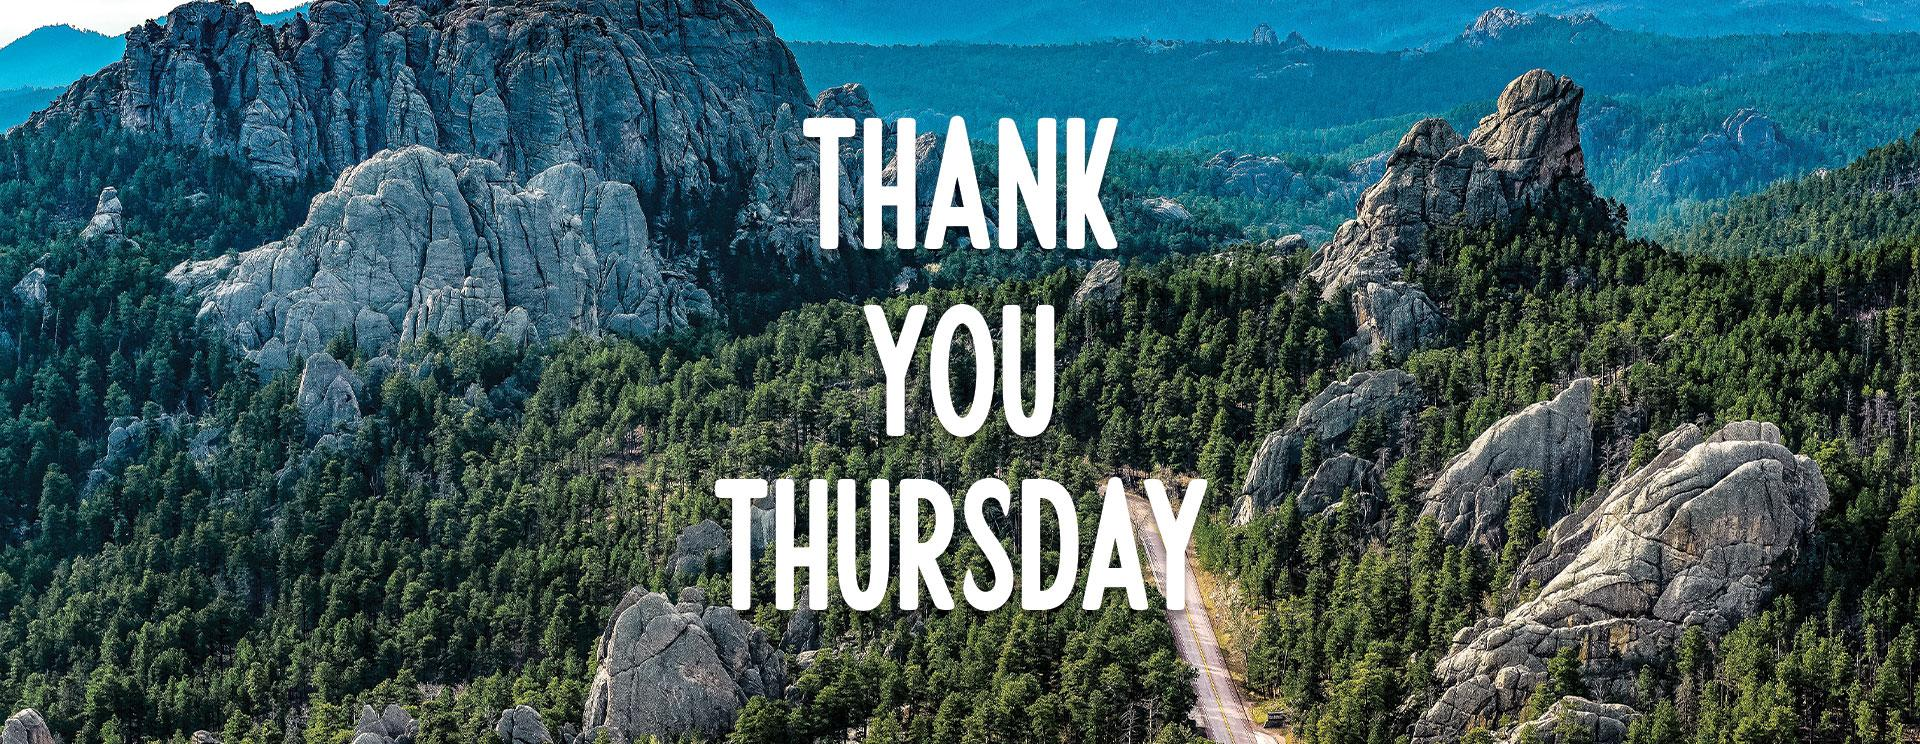 Thank You Thursday ∙ New Members ∙ Jan. 7, 2021